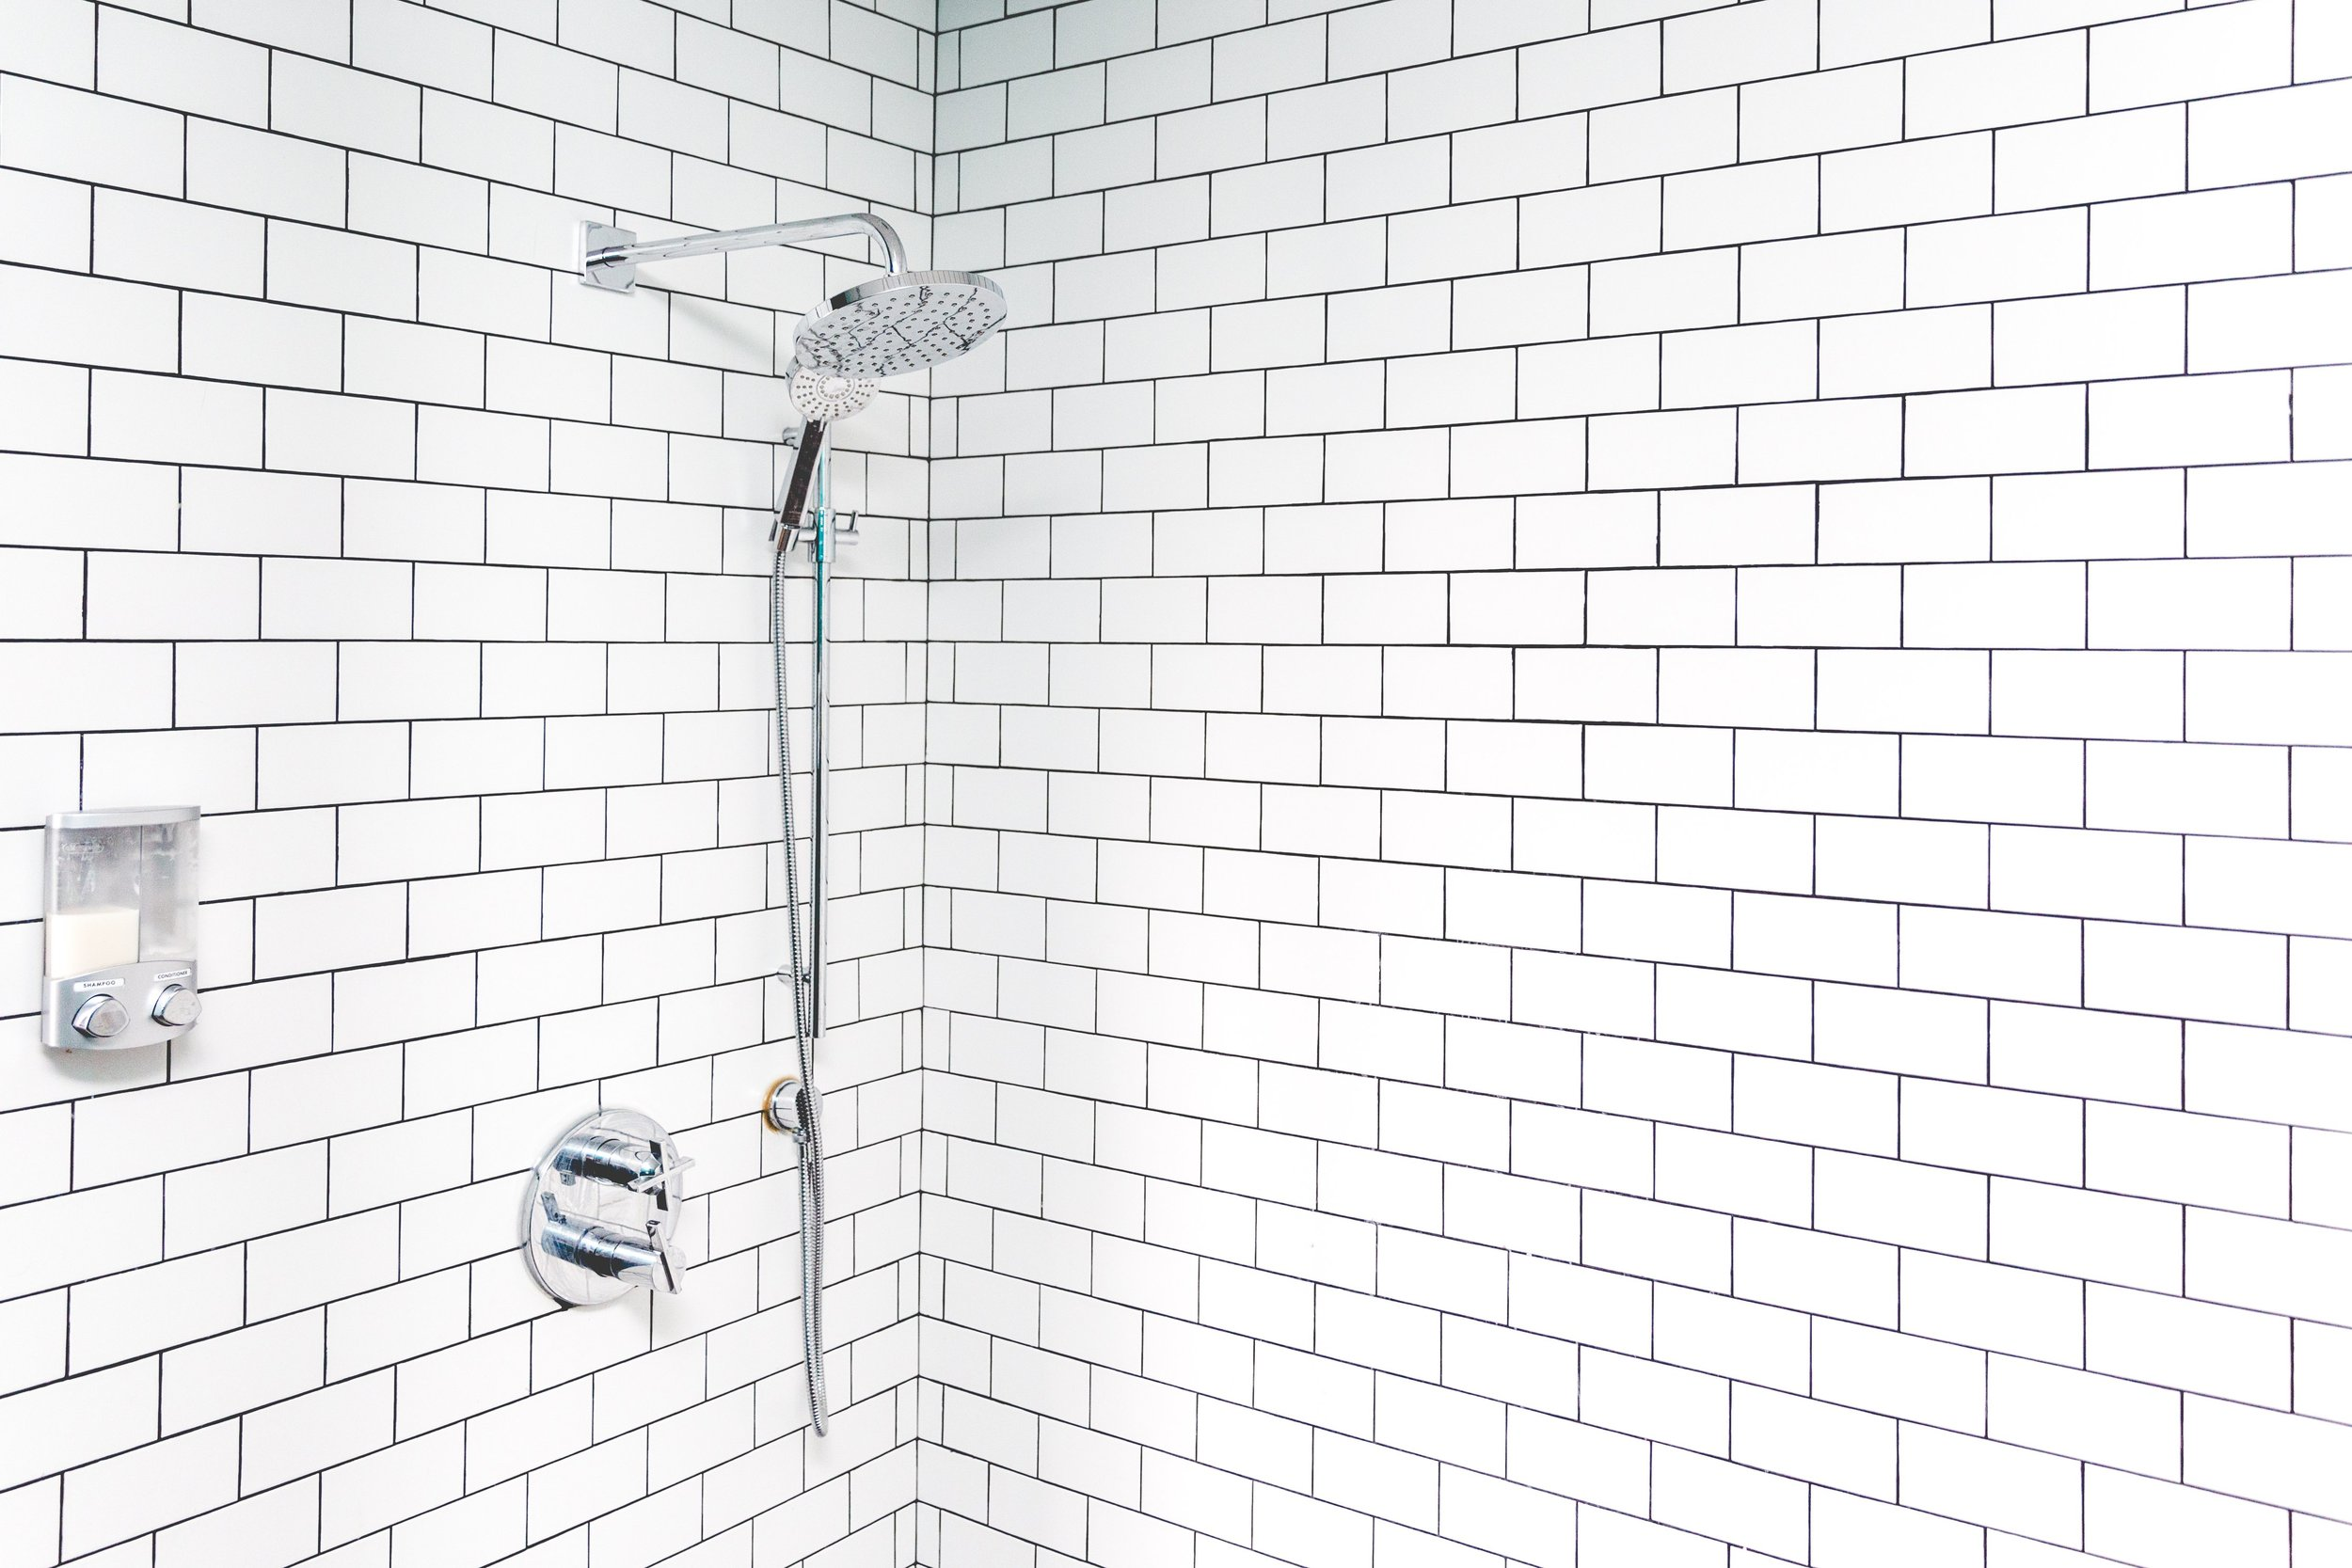 white-tile-shower-corner_4460x4460.jpg